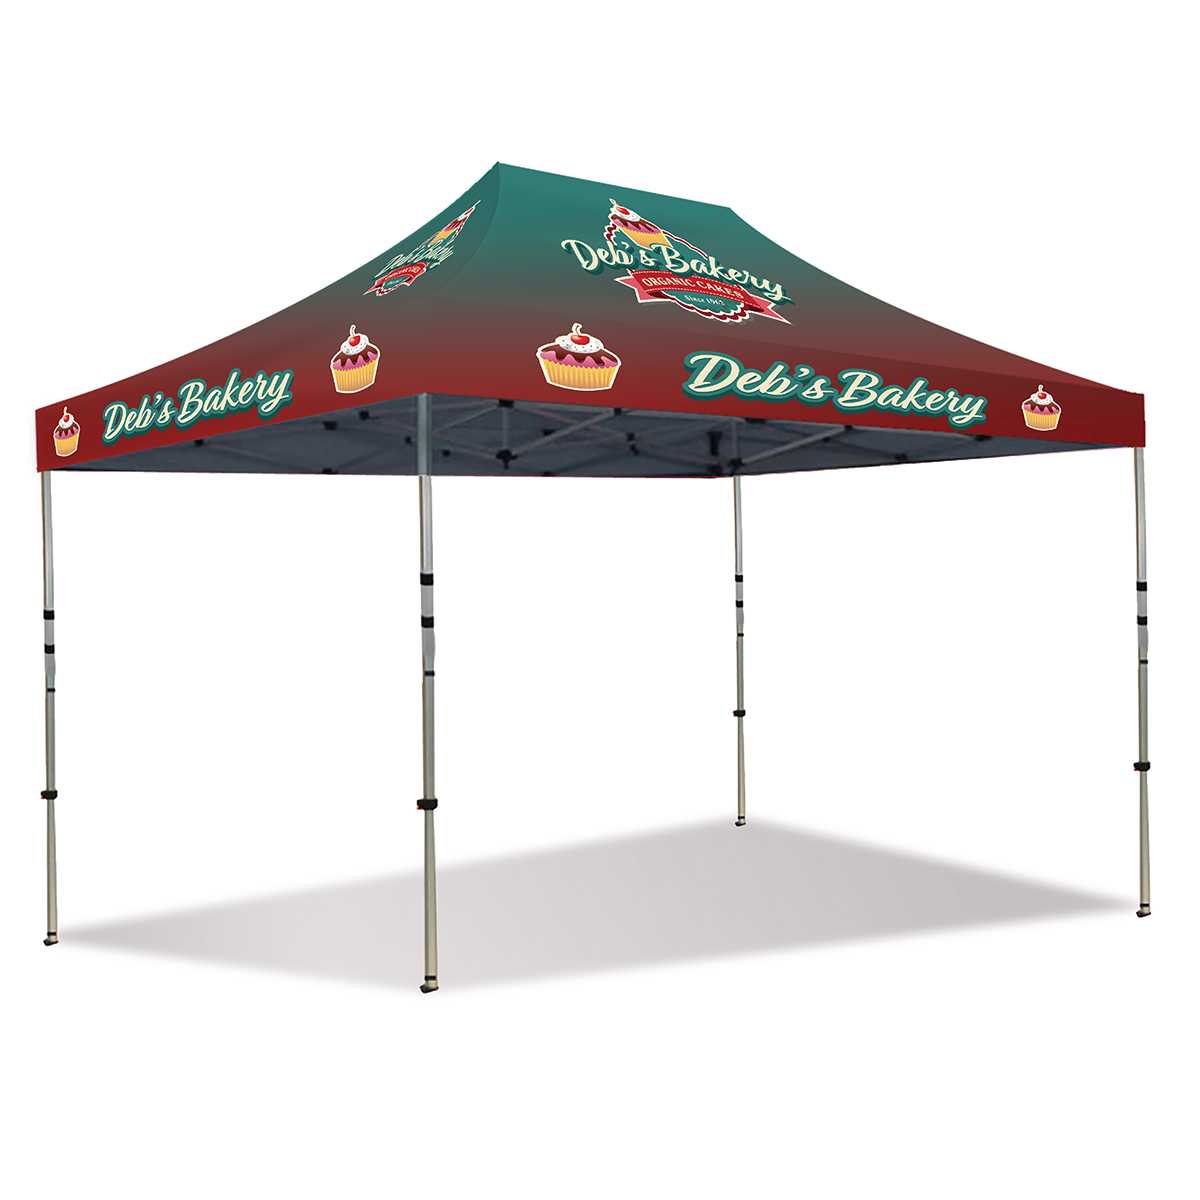 15ft Pop Up Canopy - Full Color-Standard